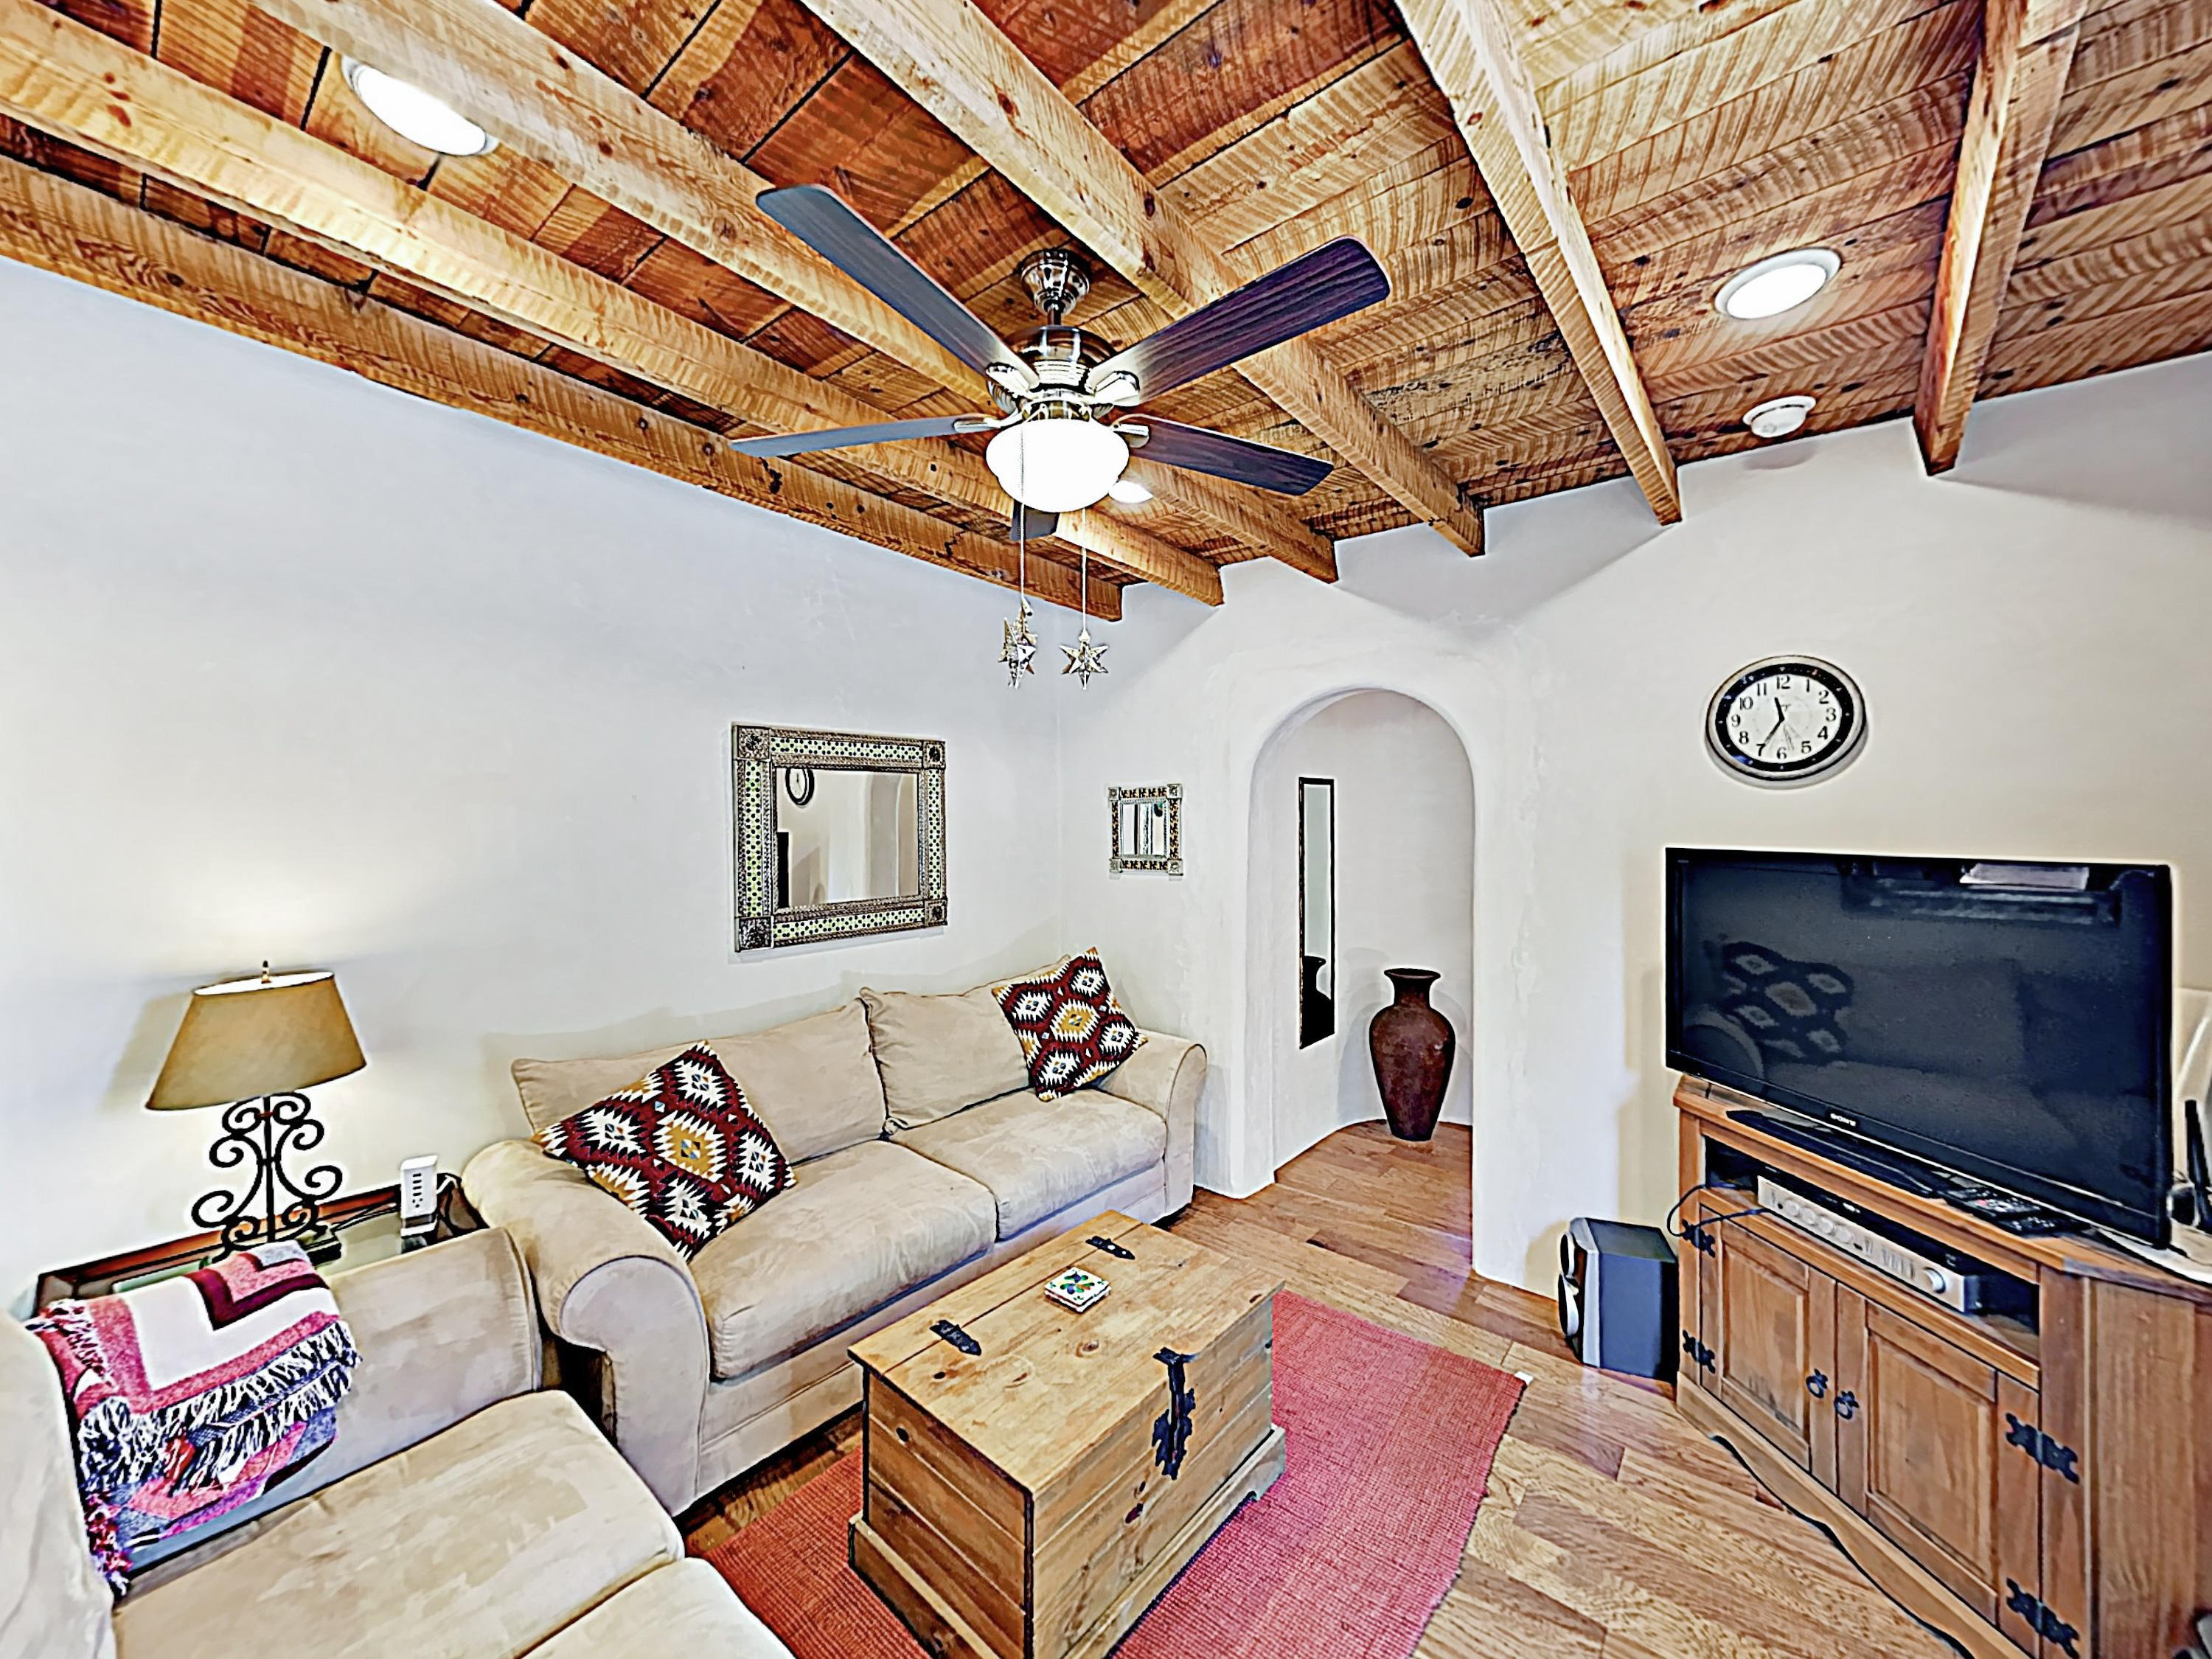 Wood beam ceilings add classic Southwestern charm throughout the 1,200 square foot floor plan.